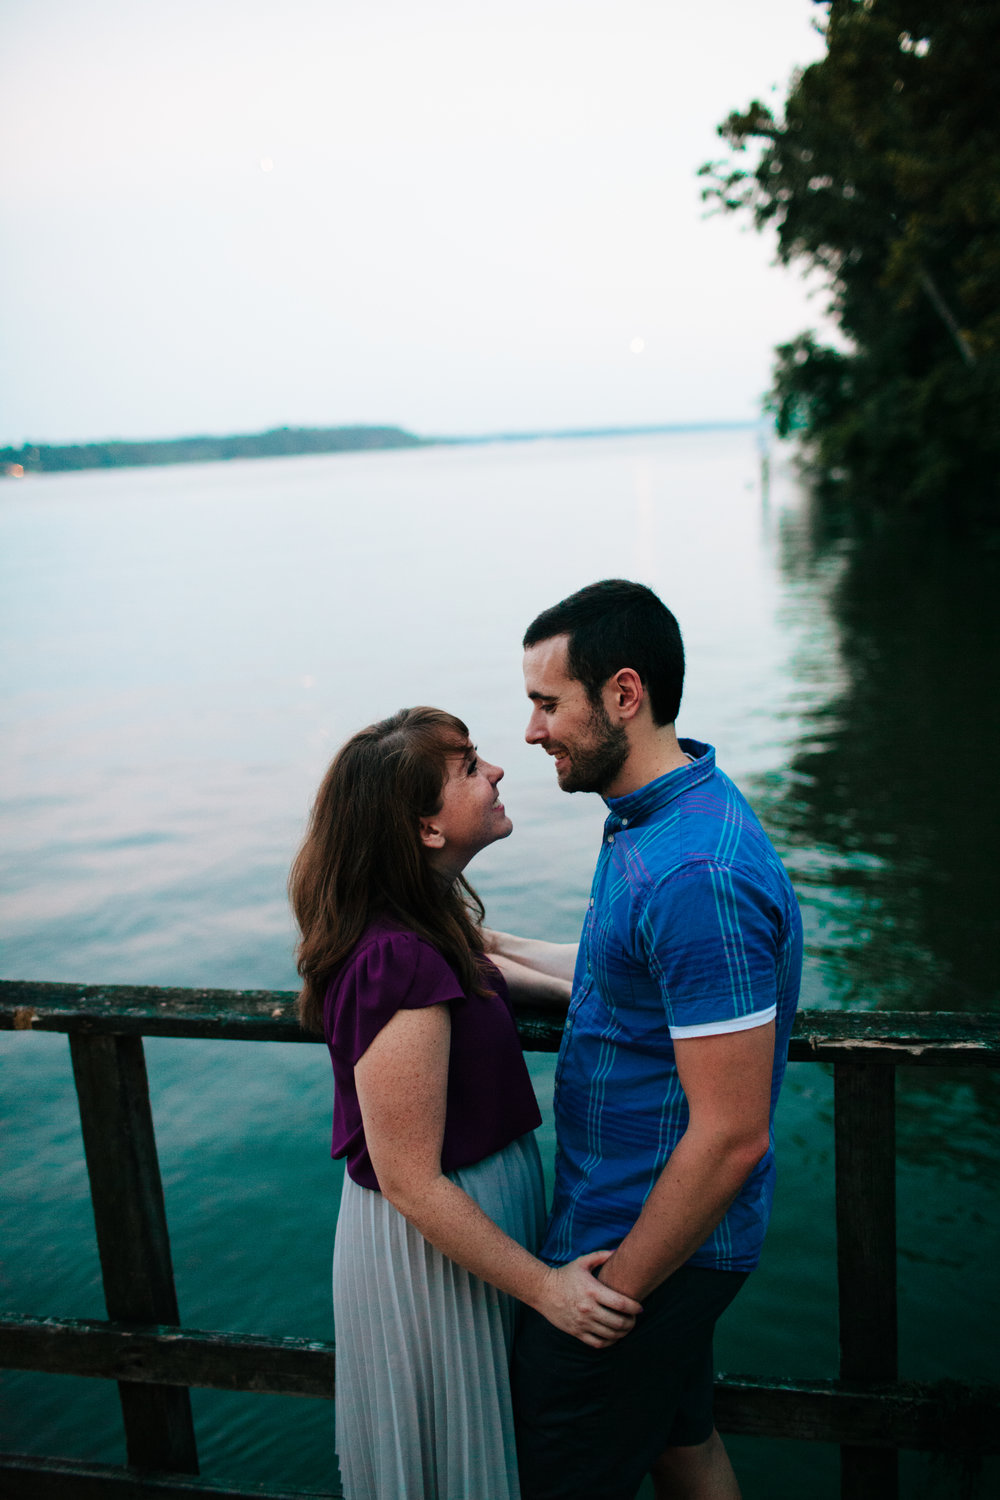 seaside-portland-maine-engagement-shoot-5106.jpg